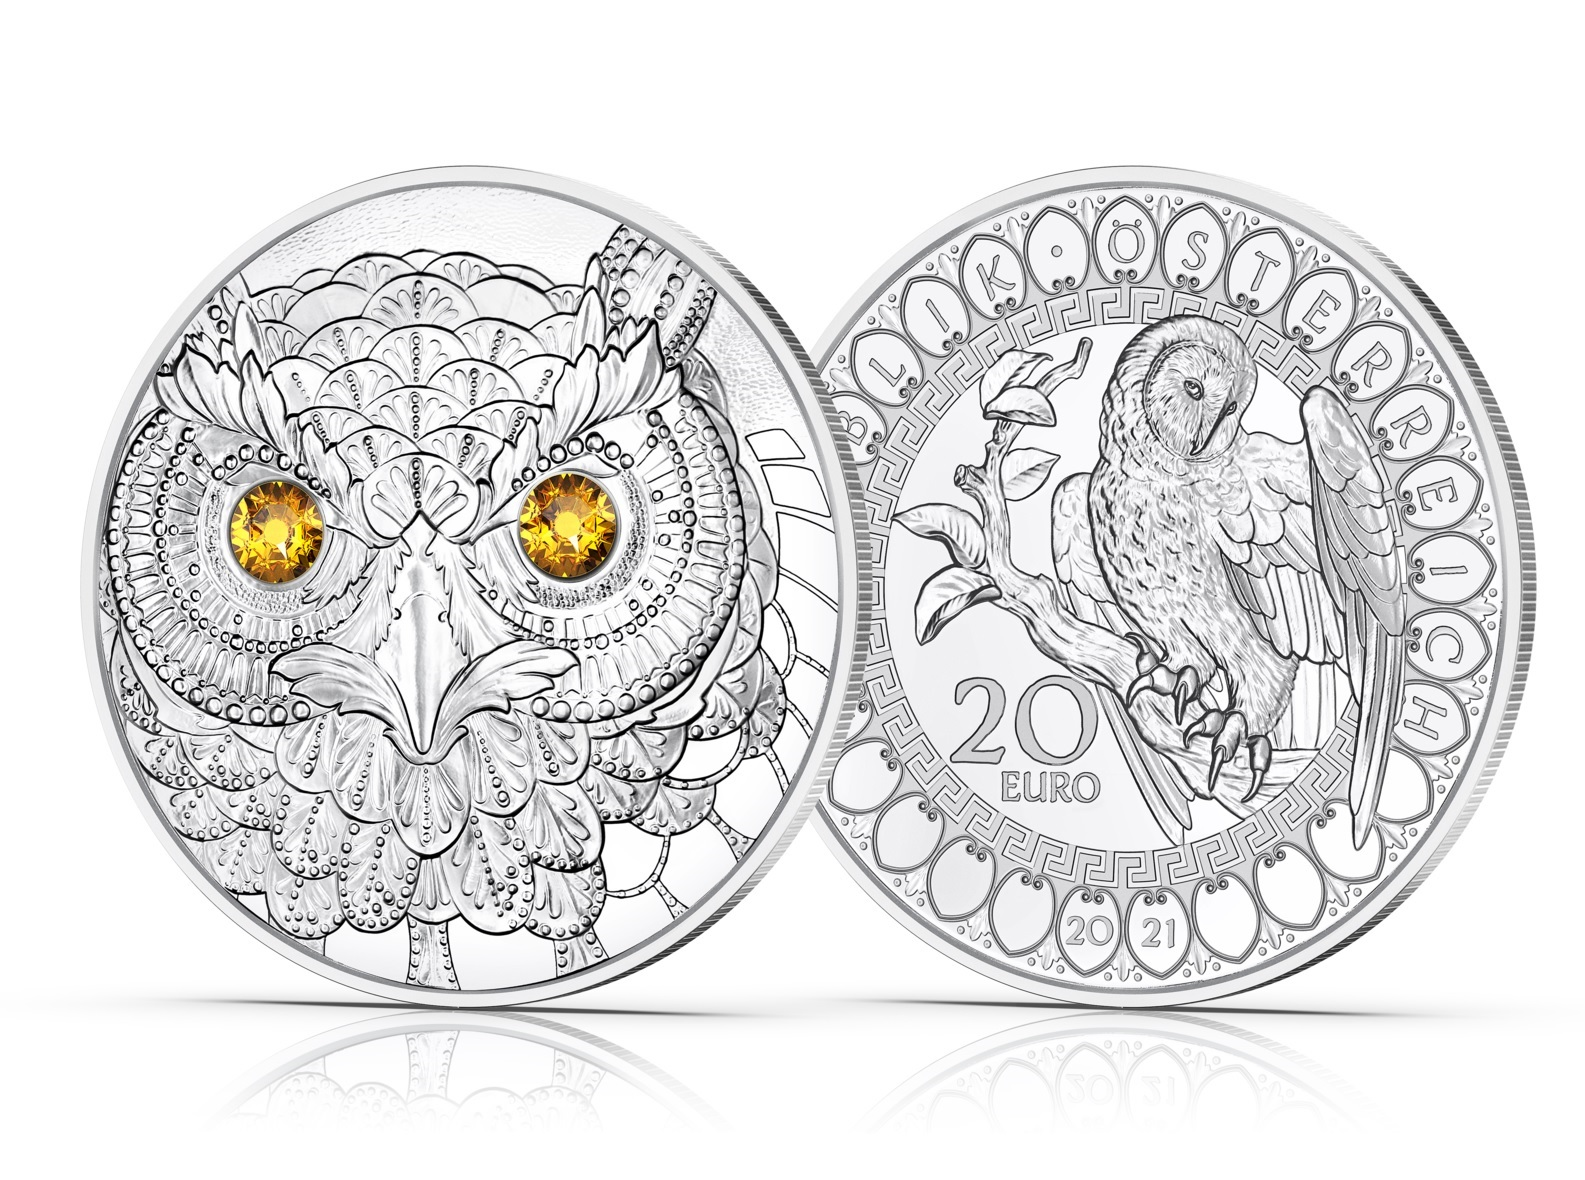 (EUR01.Proof.2021.25152) 20 euro Austria 2021 Proof silver - The Wisdom of the Owl (zoom)